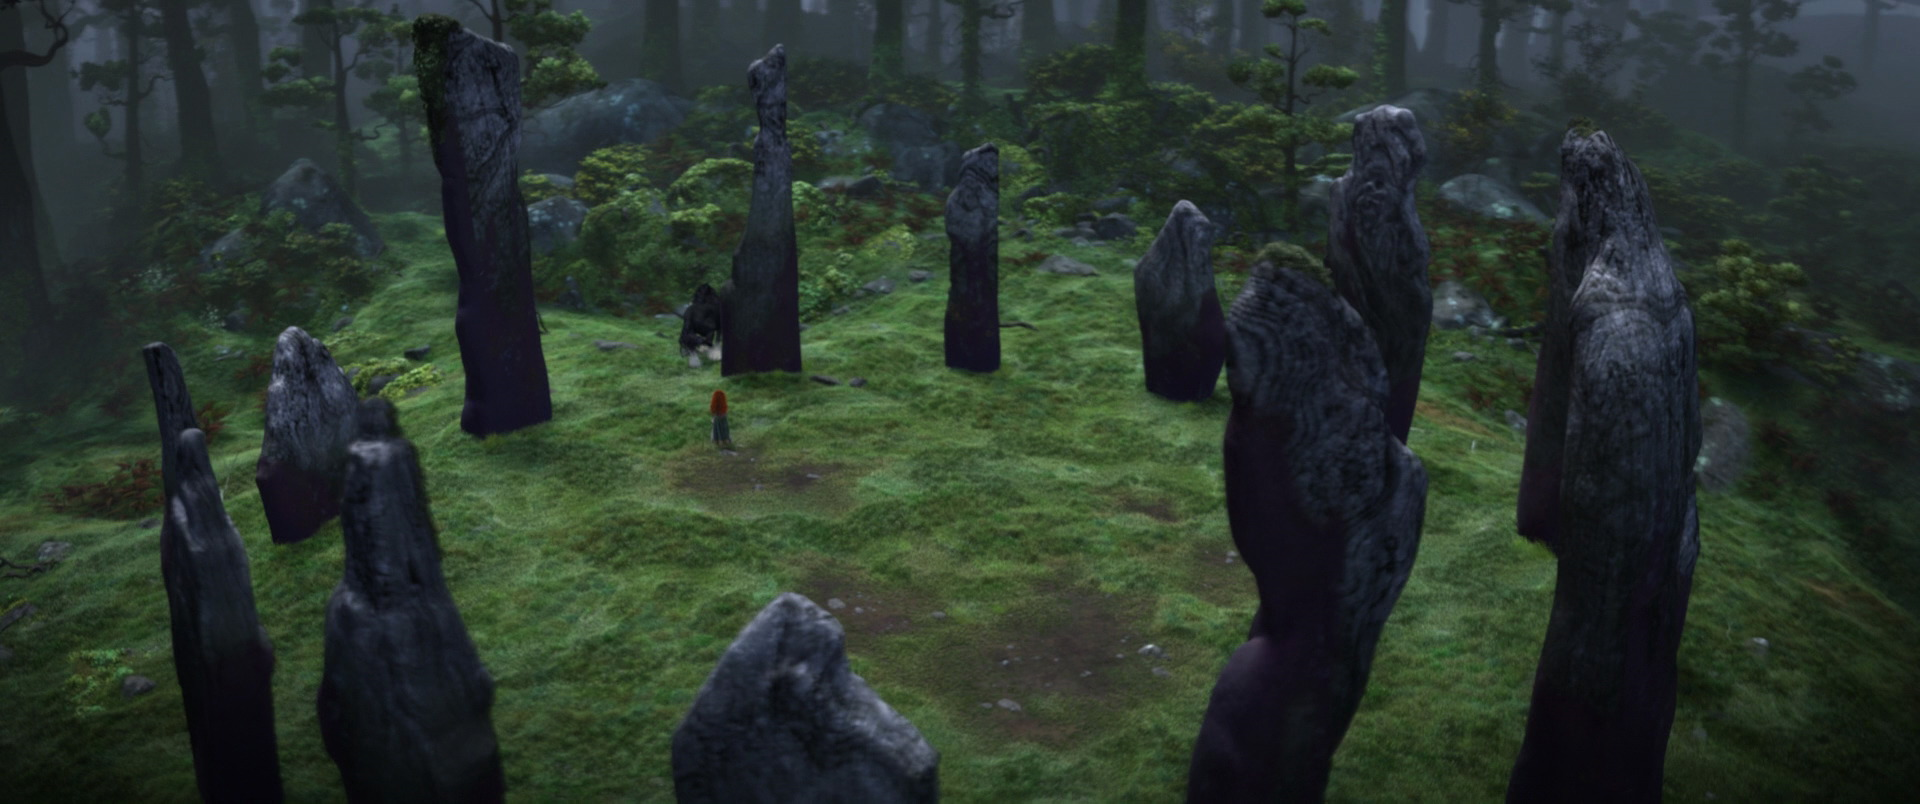 ring of stones disney wiki fandom powered by wikia